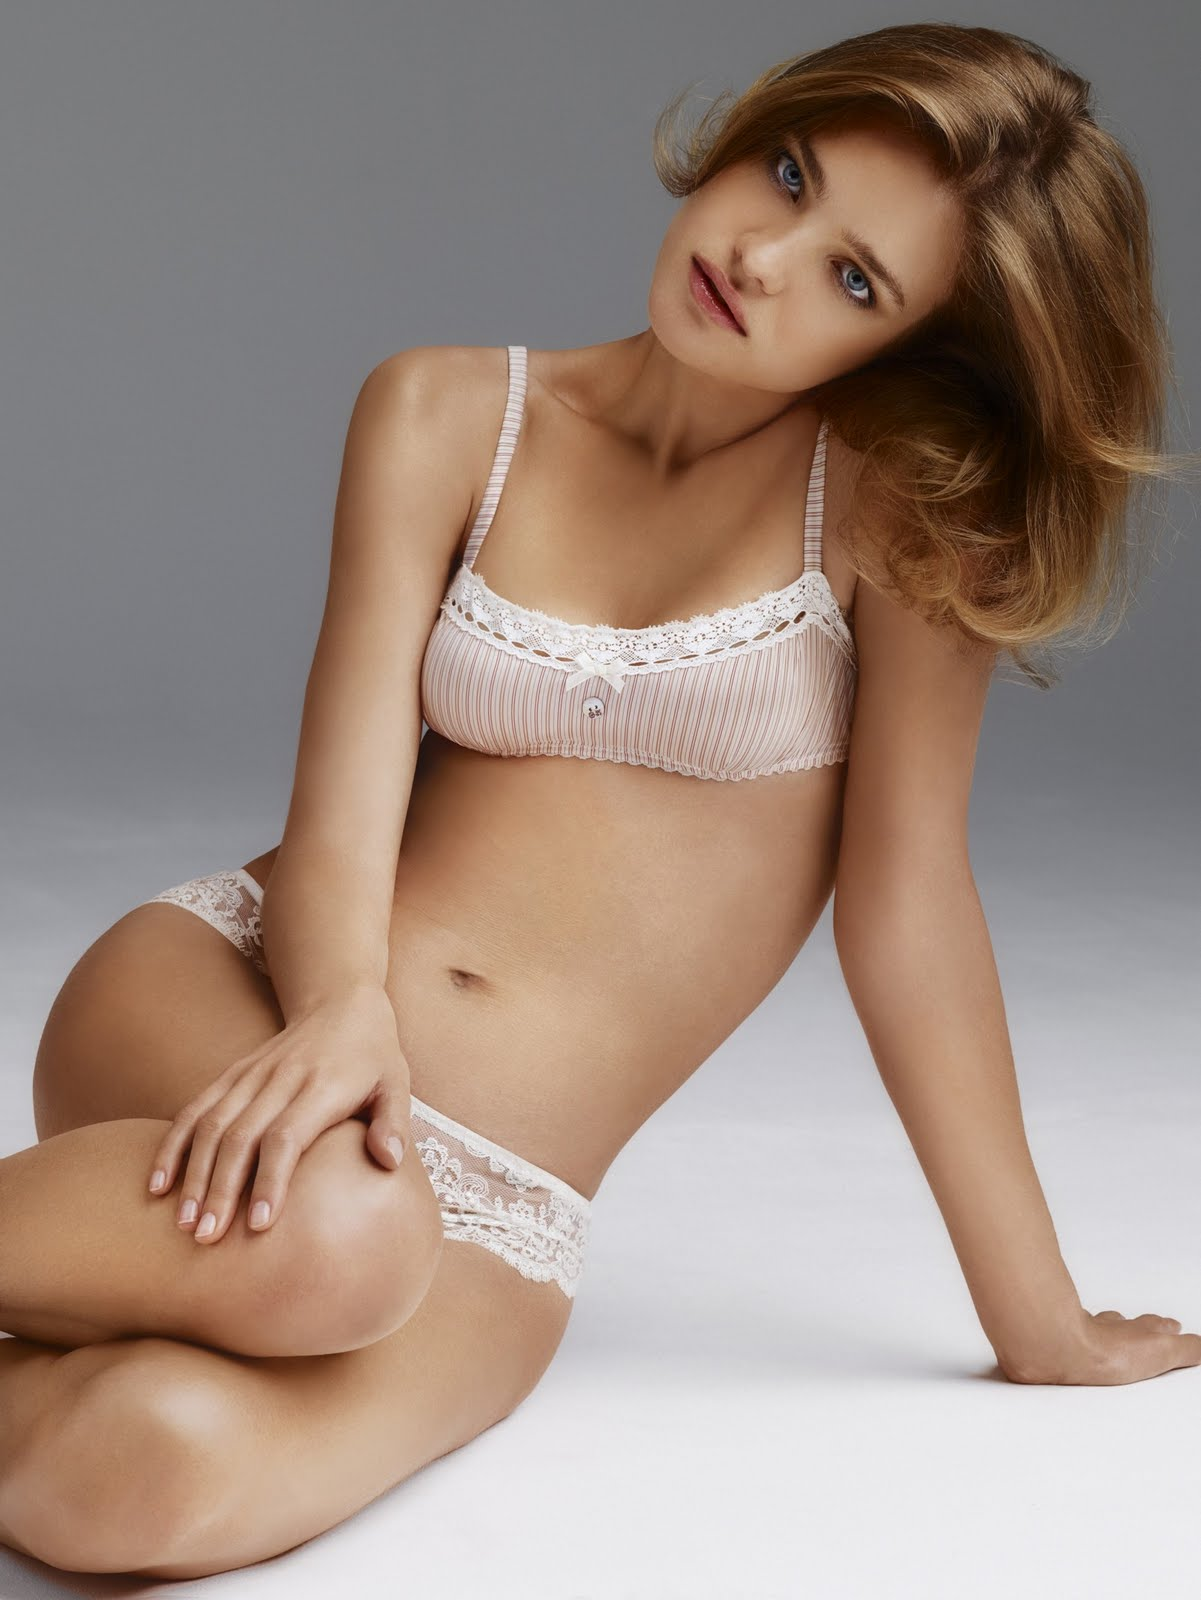 Cleavage Natalia Vodianova nude (39 photos), Pussy, Cleavage, Twitter, lingerie 2020